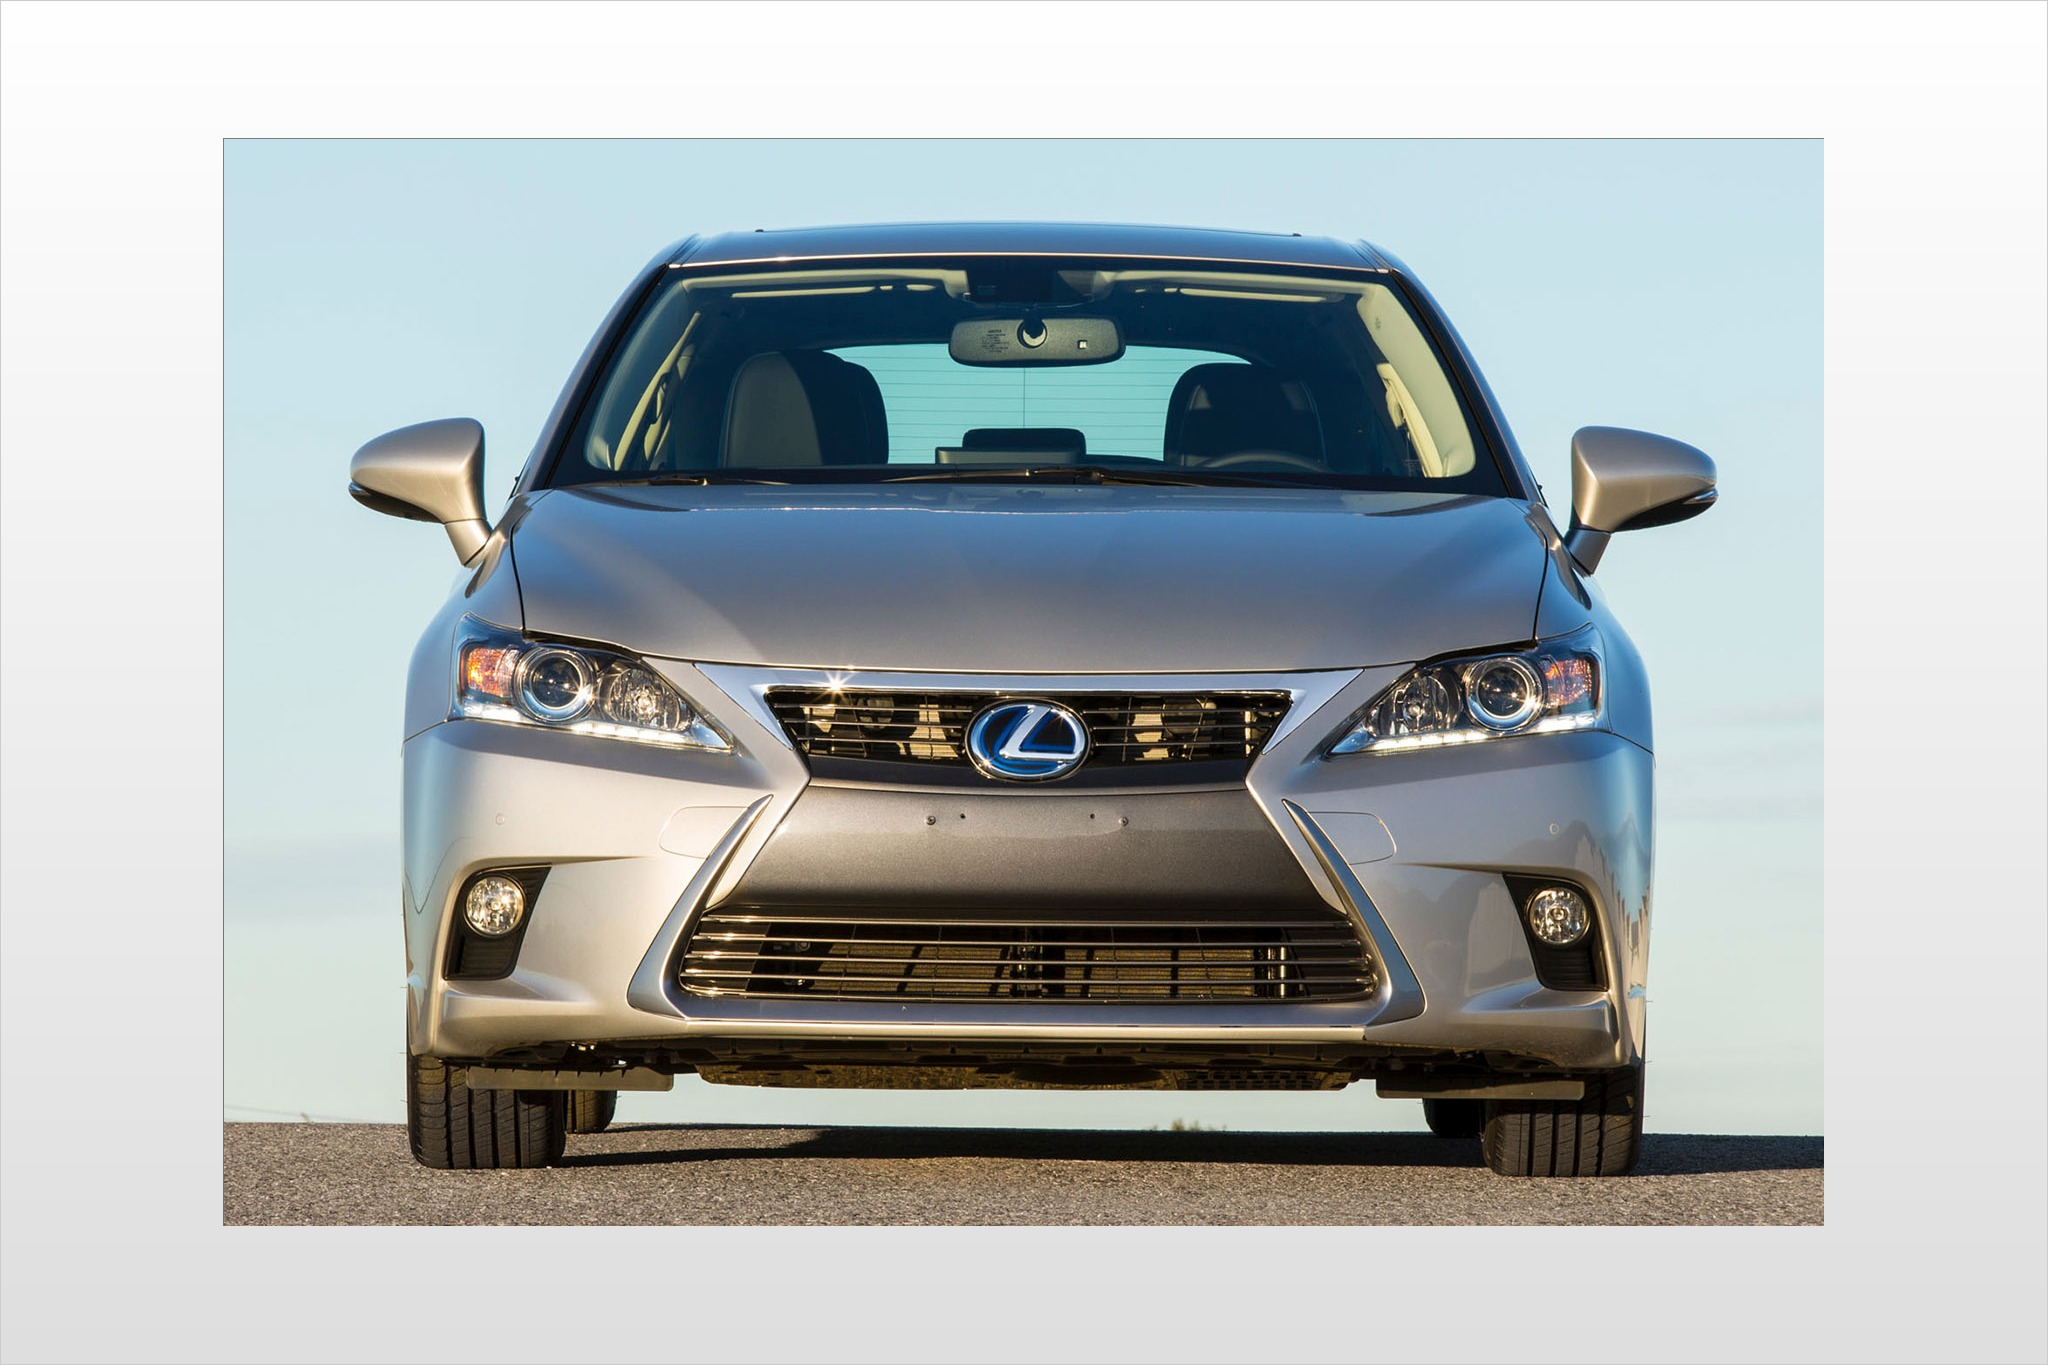 2014 Lexus CT 200h 4dr Ha interior #8